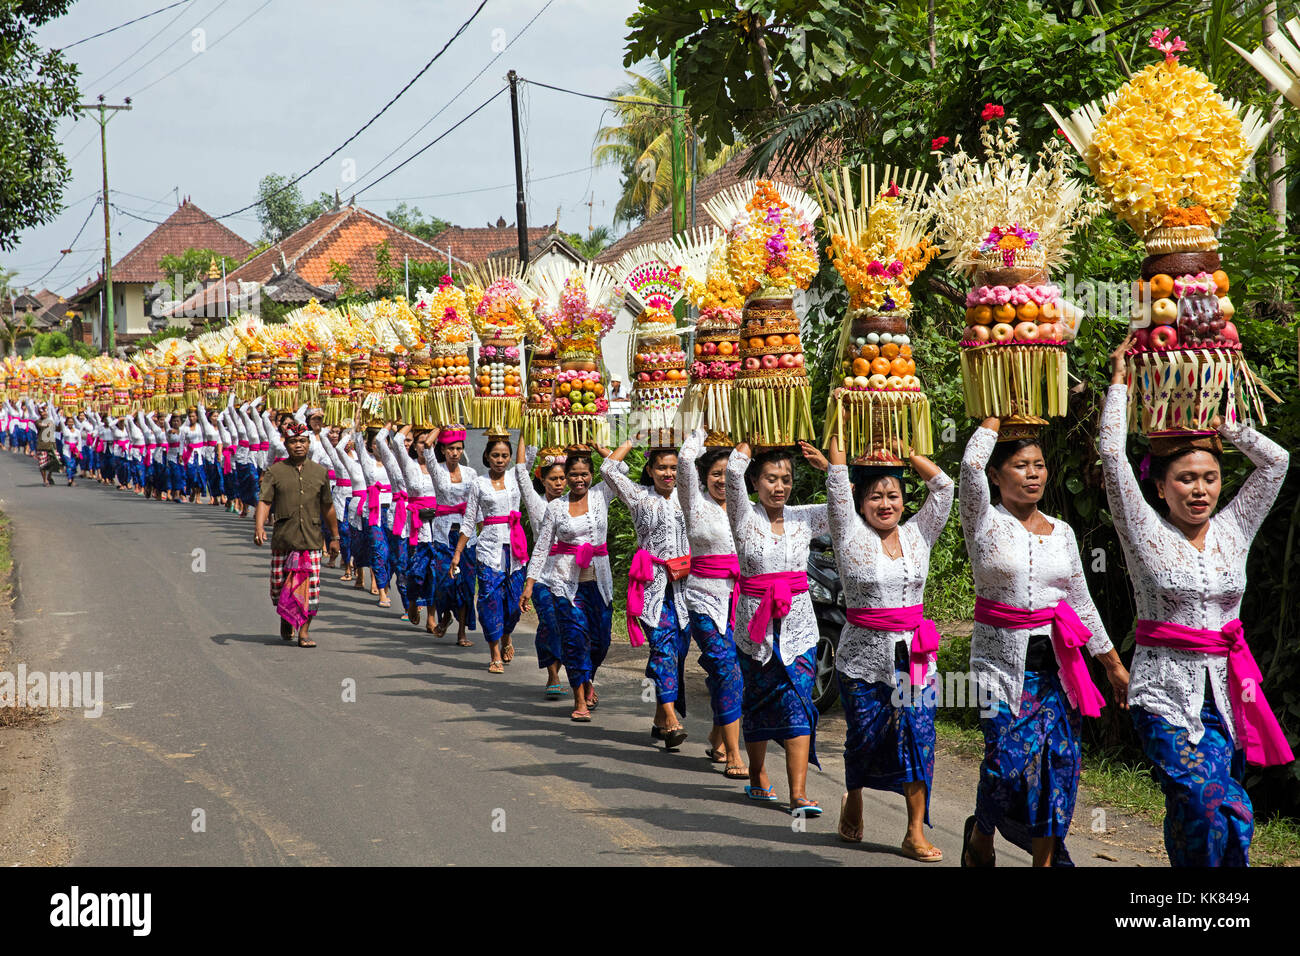 Procession of traditionally dressed women carrying temple offerings / gebogans on their head near Ubud, Gianyar - Stock Image